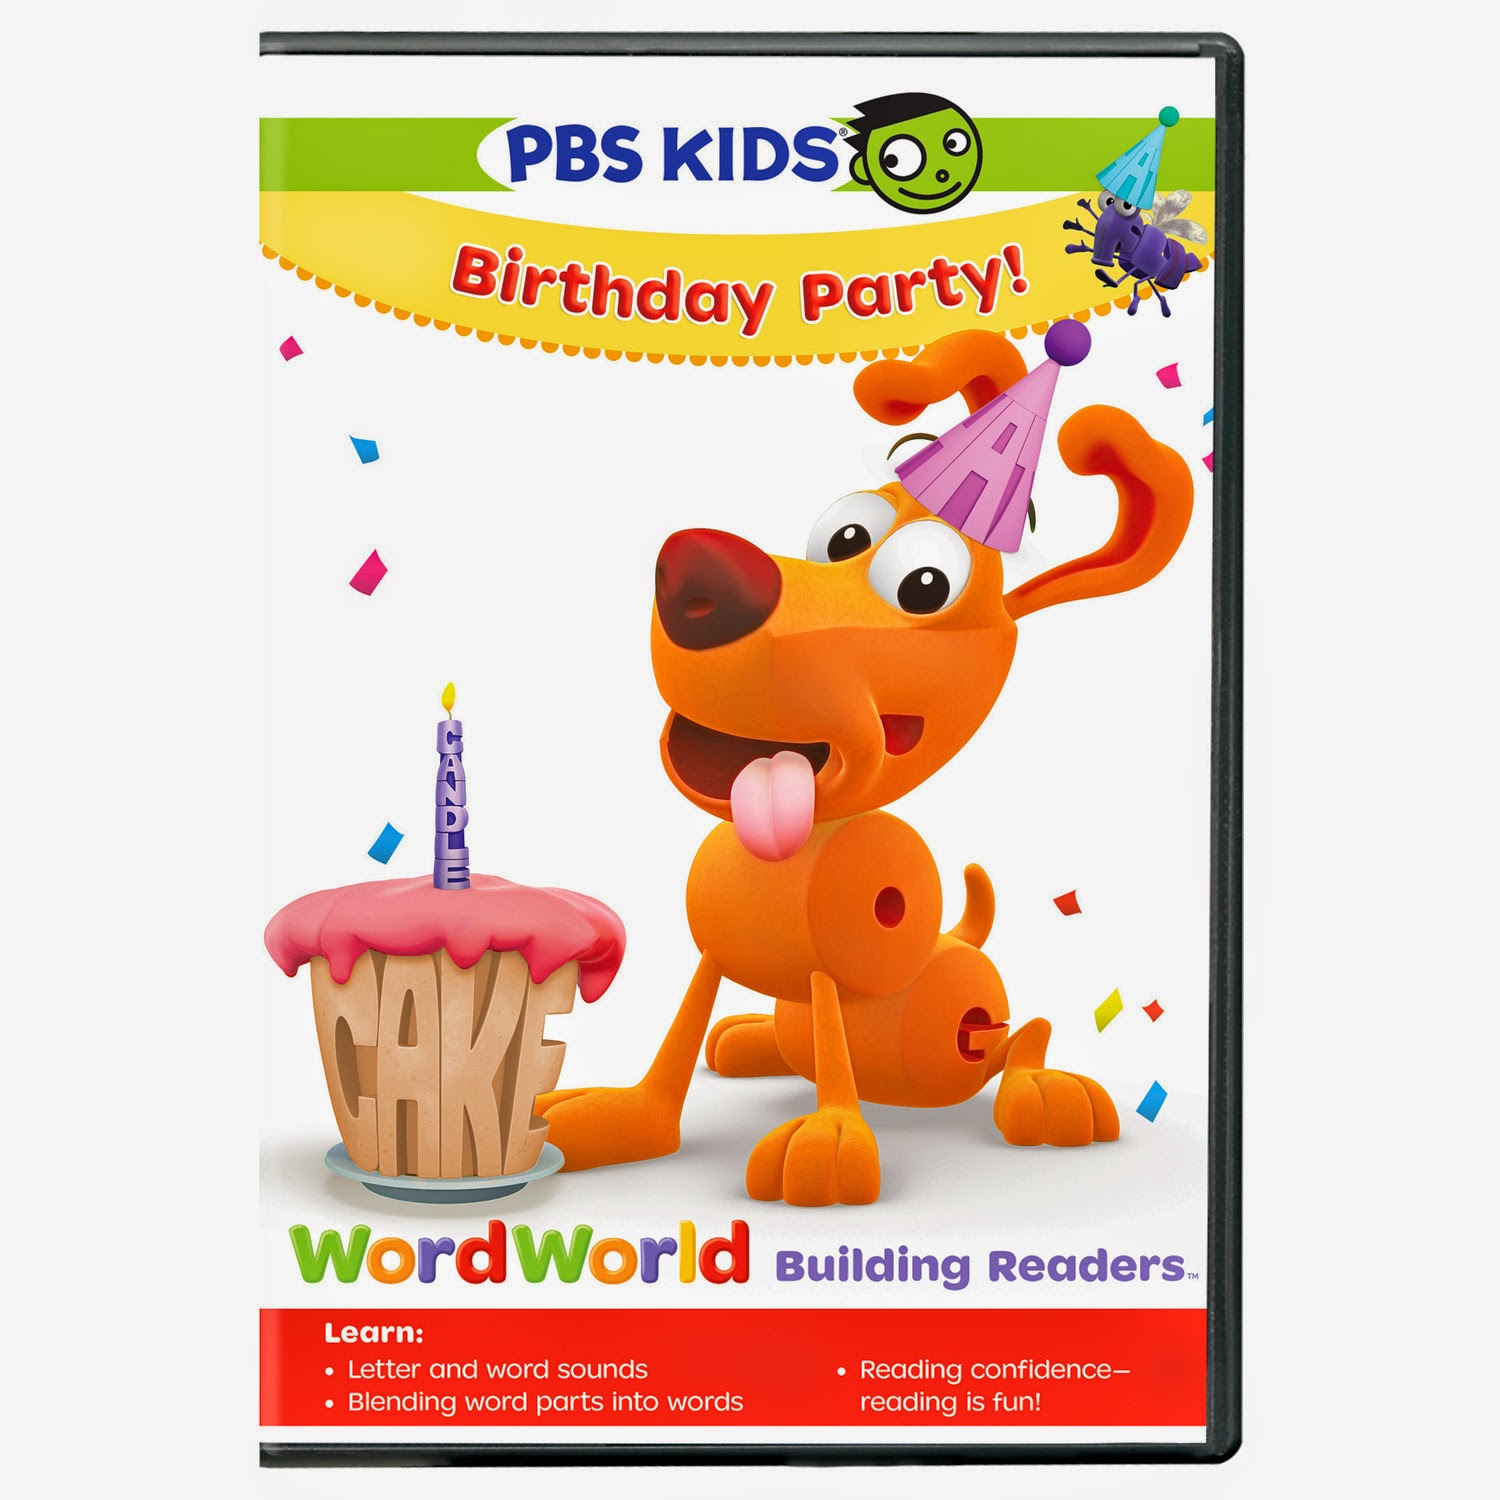 going full throttle pbs kids word world birthday party march